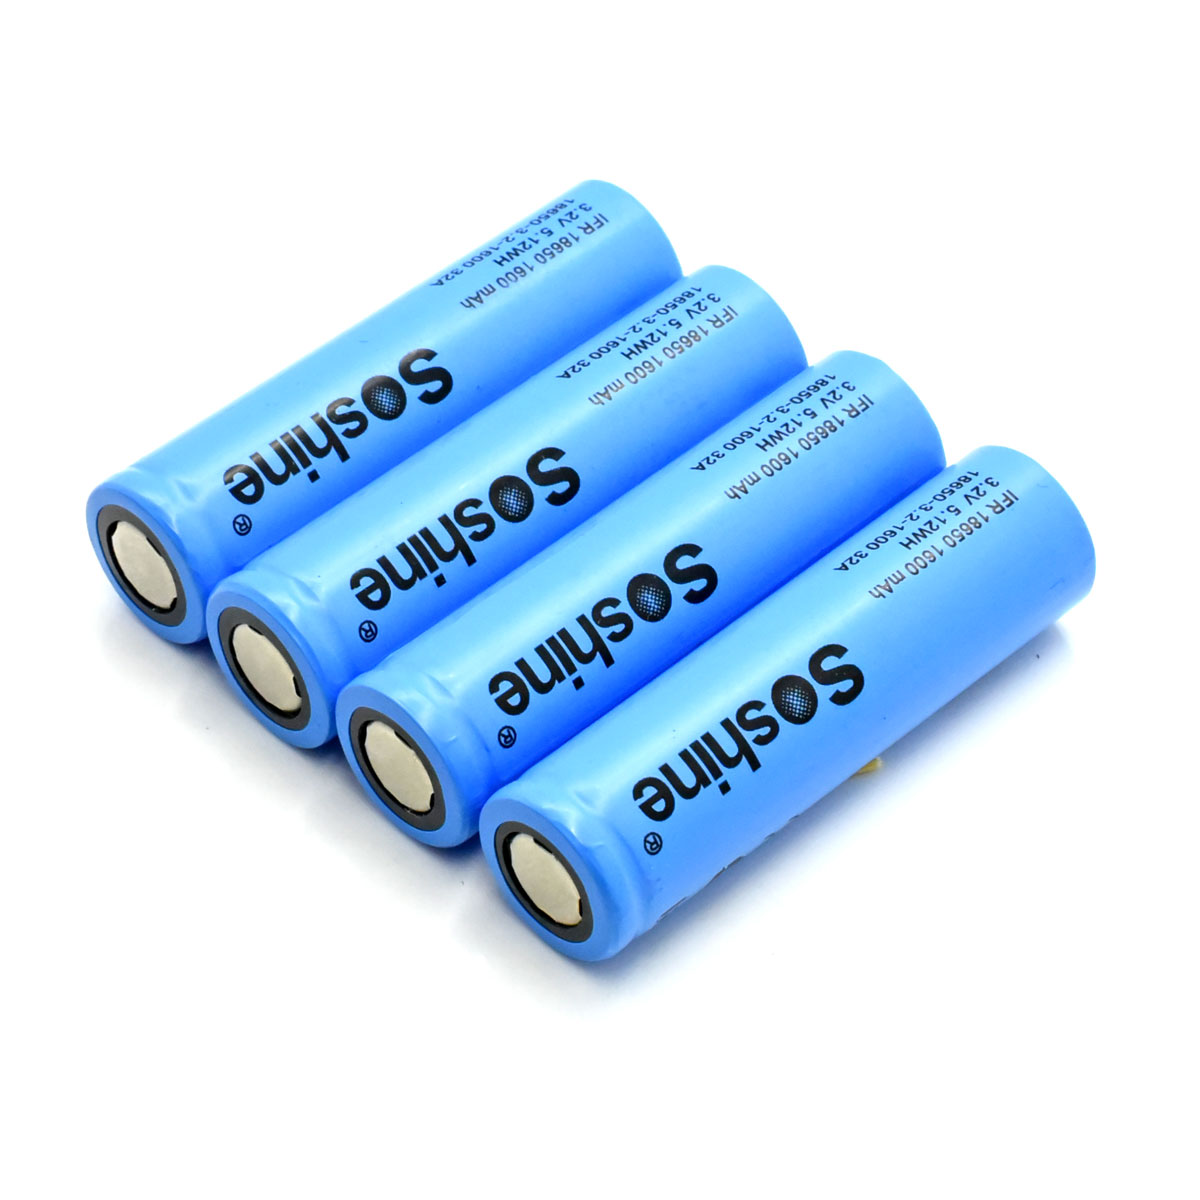 Soshine 18650 LiFePO4 Battery: 1600mAh 3.2V